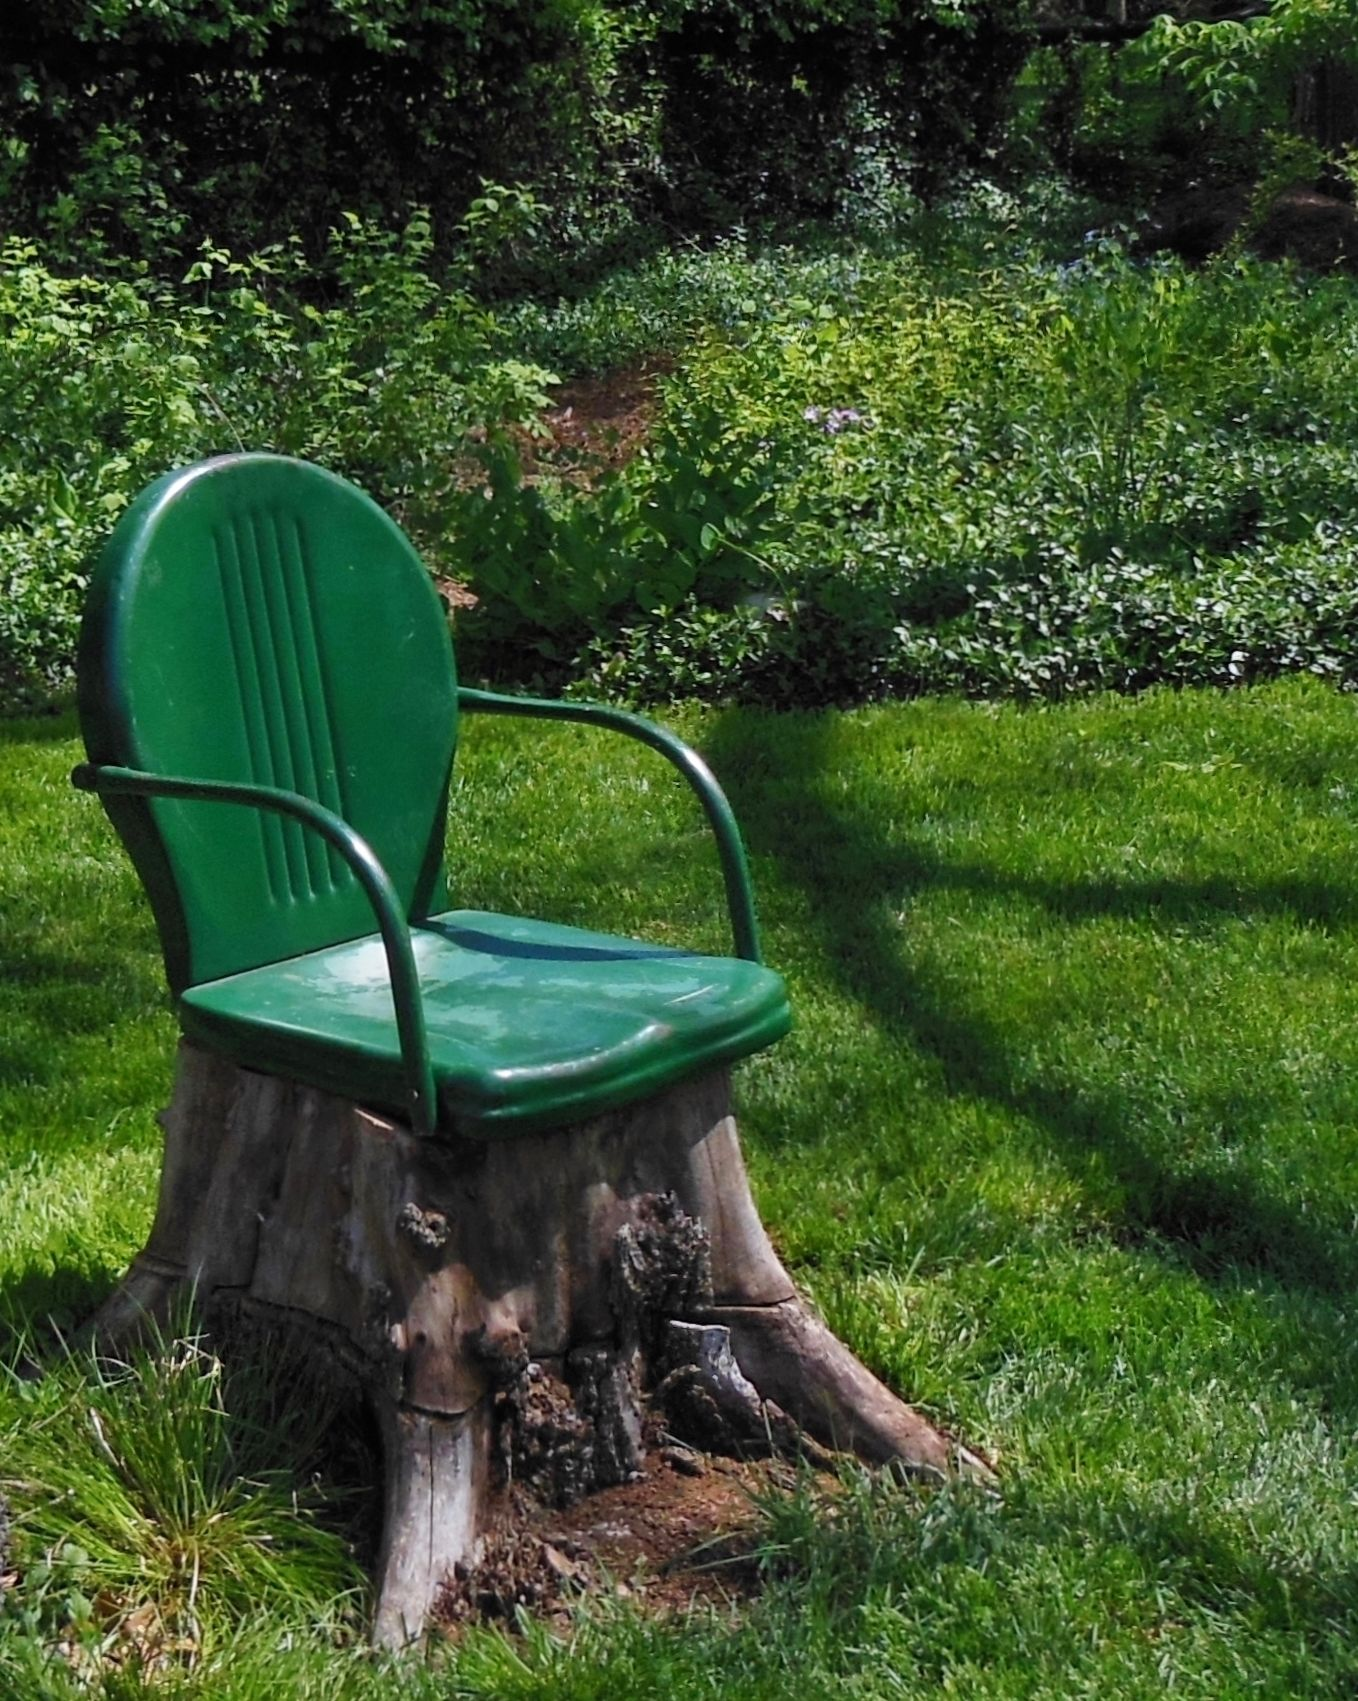 One unsightly tree stump + one metal chair with a broken leg = a ...